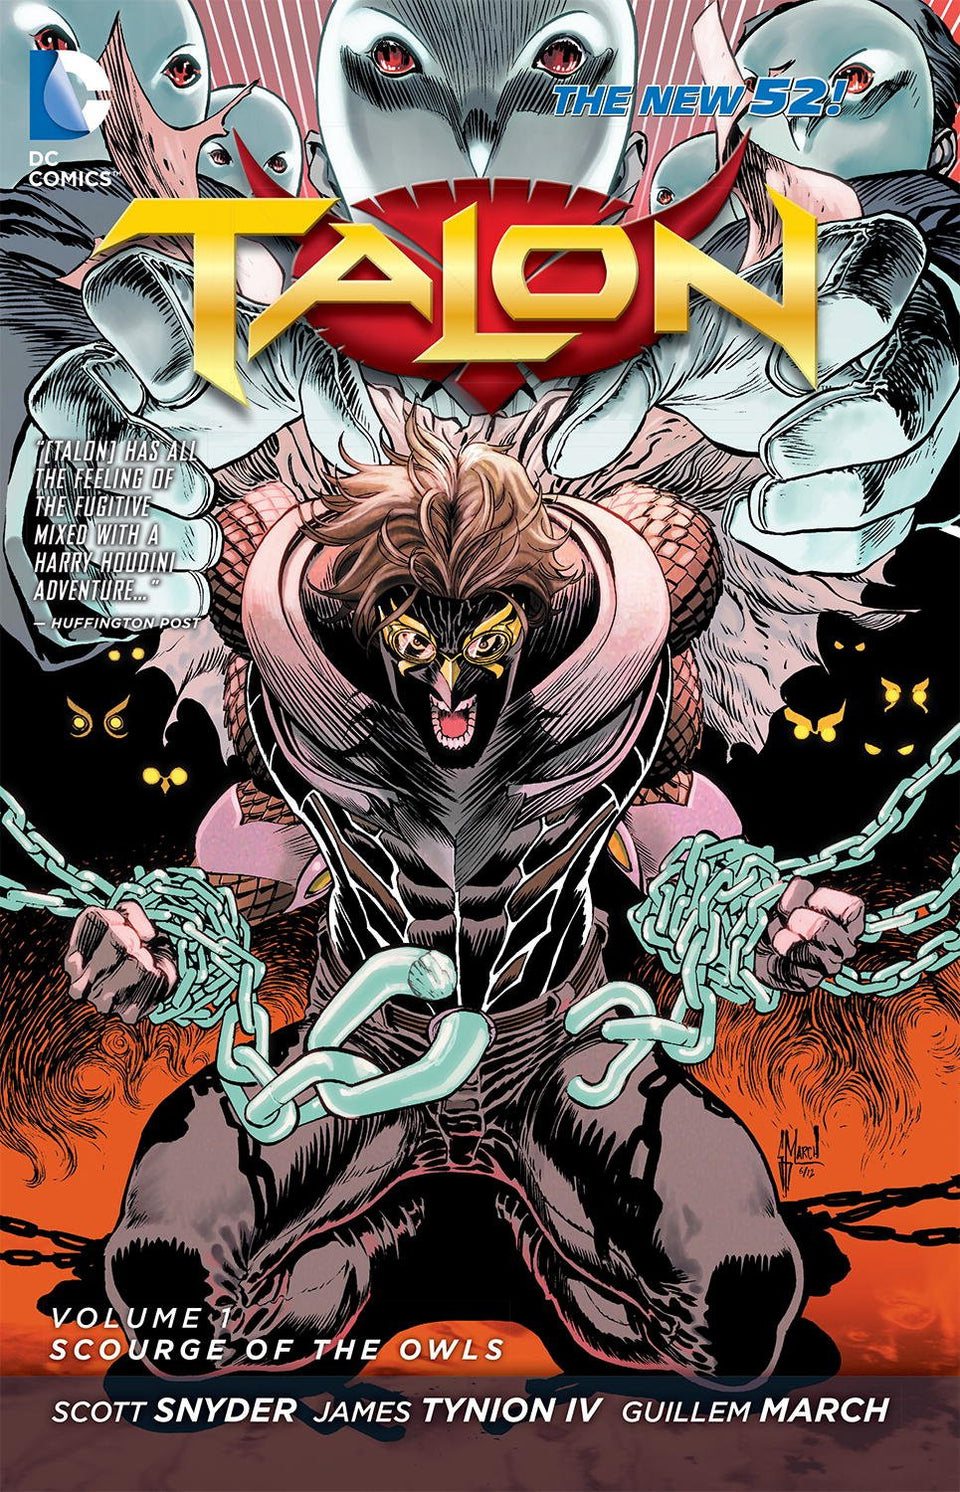 Talon Vol. 1 Scourge of the Owls Paperback - www.entertainmentstore.in